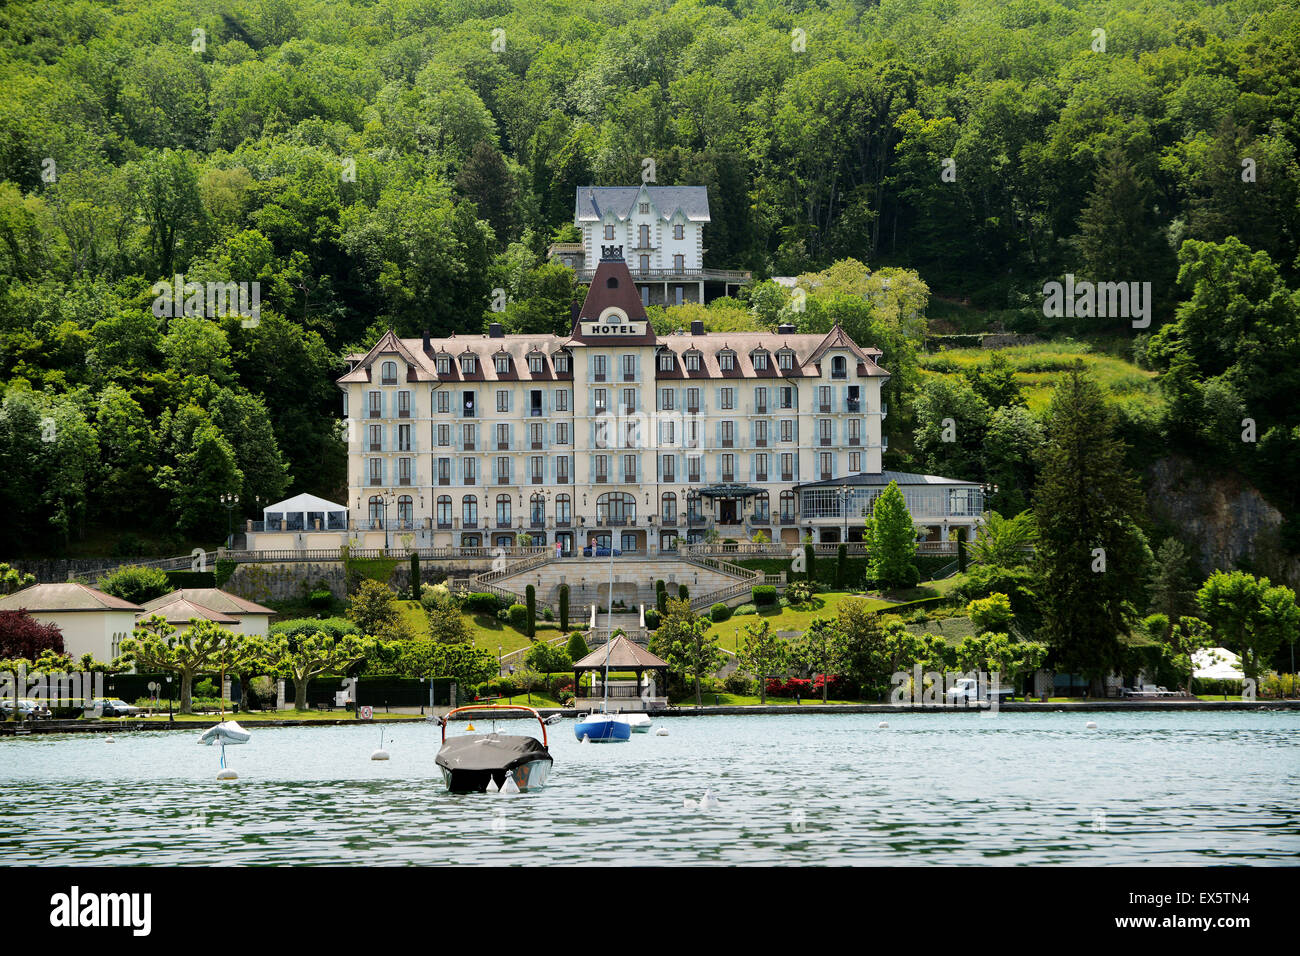 L 39 Imperial Palace Hotel At Menthon St Bernard On Lake Annecy In Stock Photo Royalty Free Image